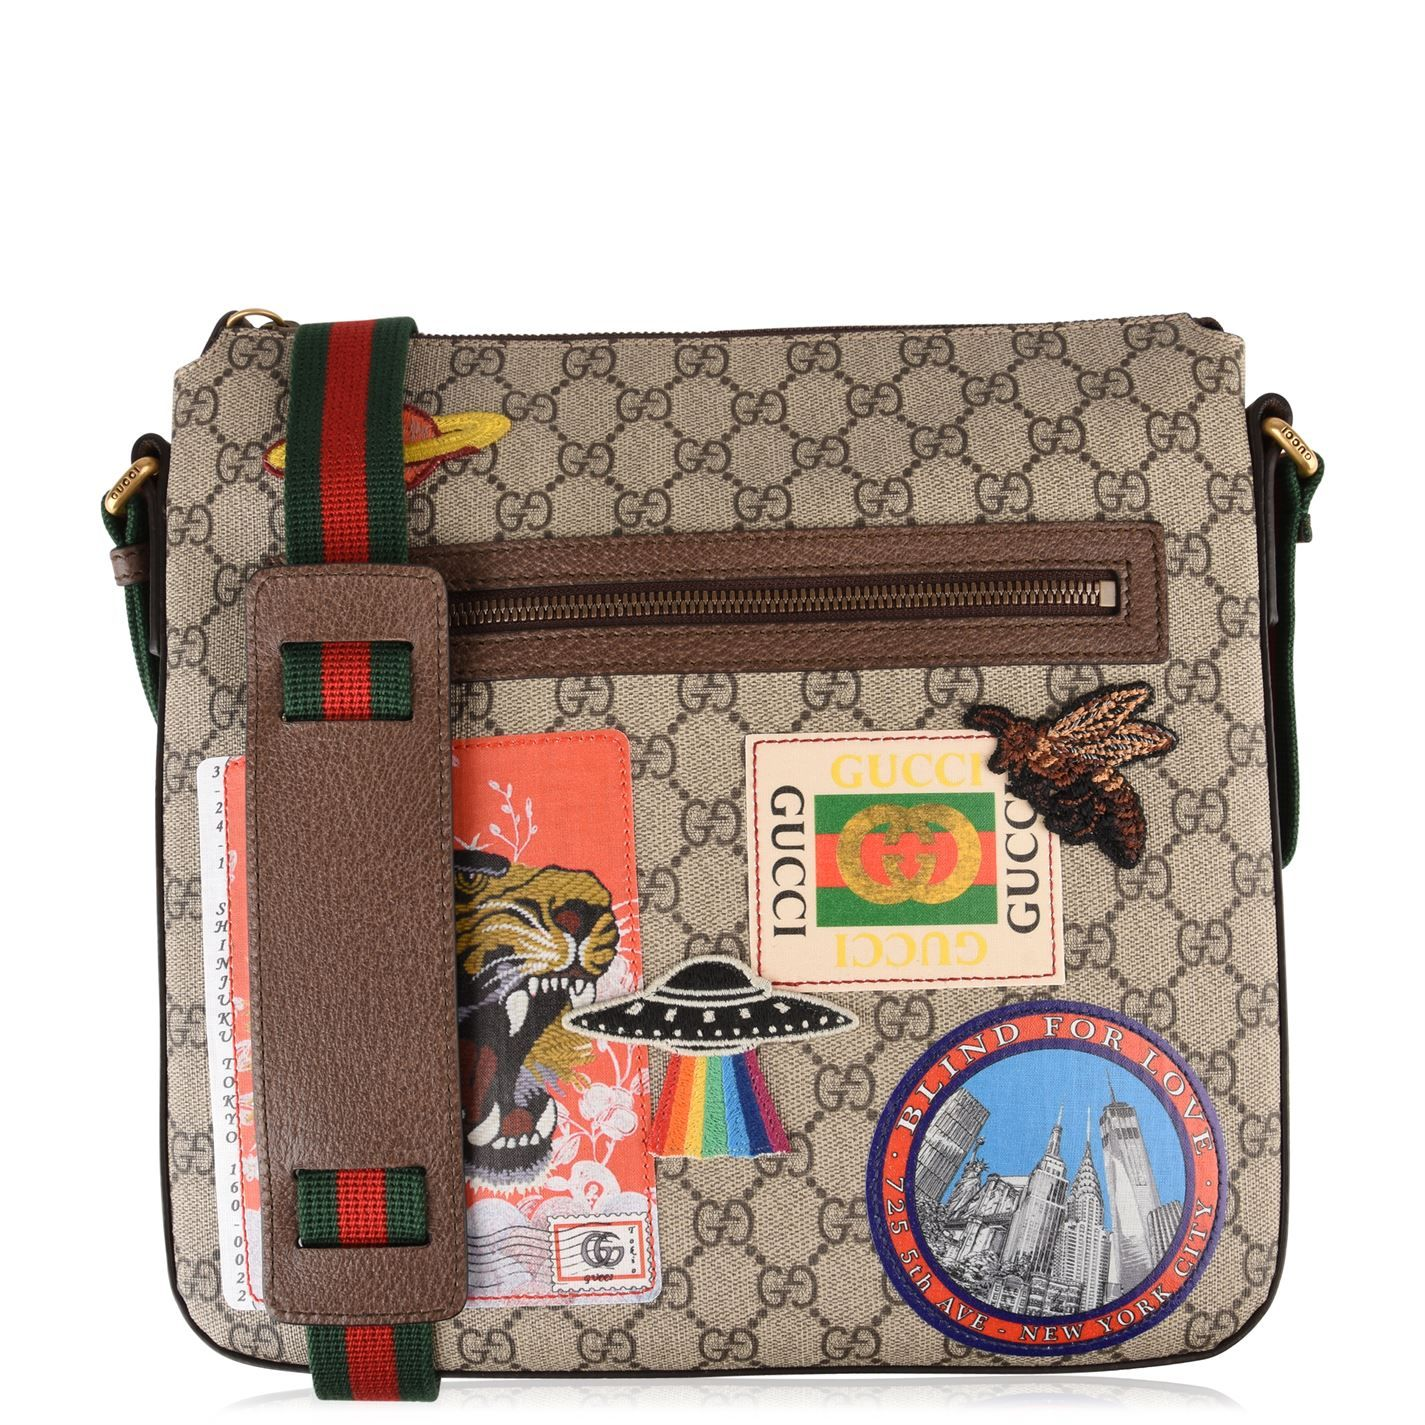 bddea192ccd6 Gucci | GG Supreme Patch Messenger Bag | spring 2019 PATCHES other ...